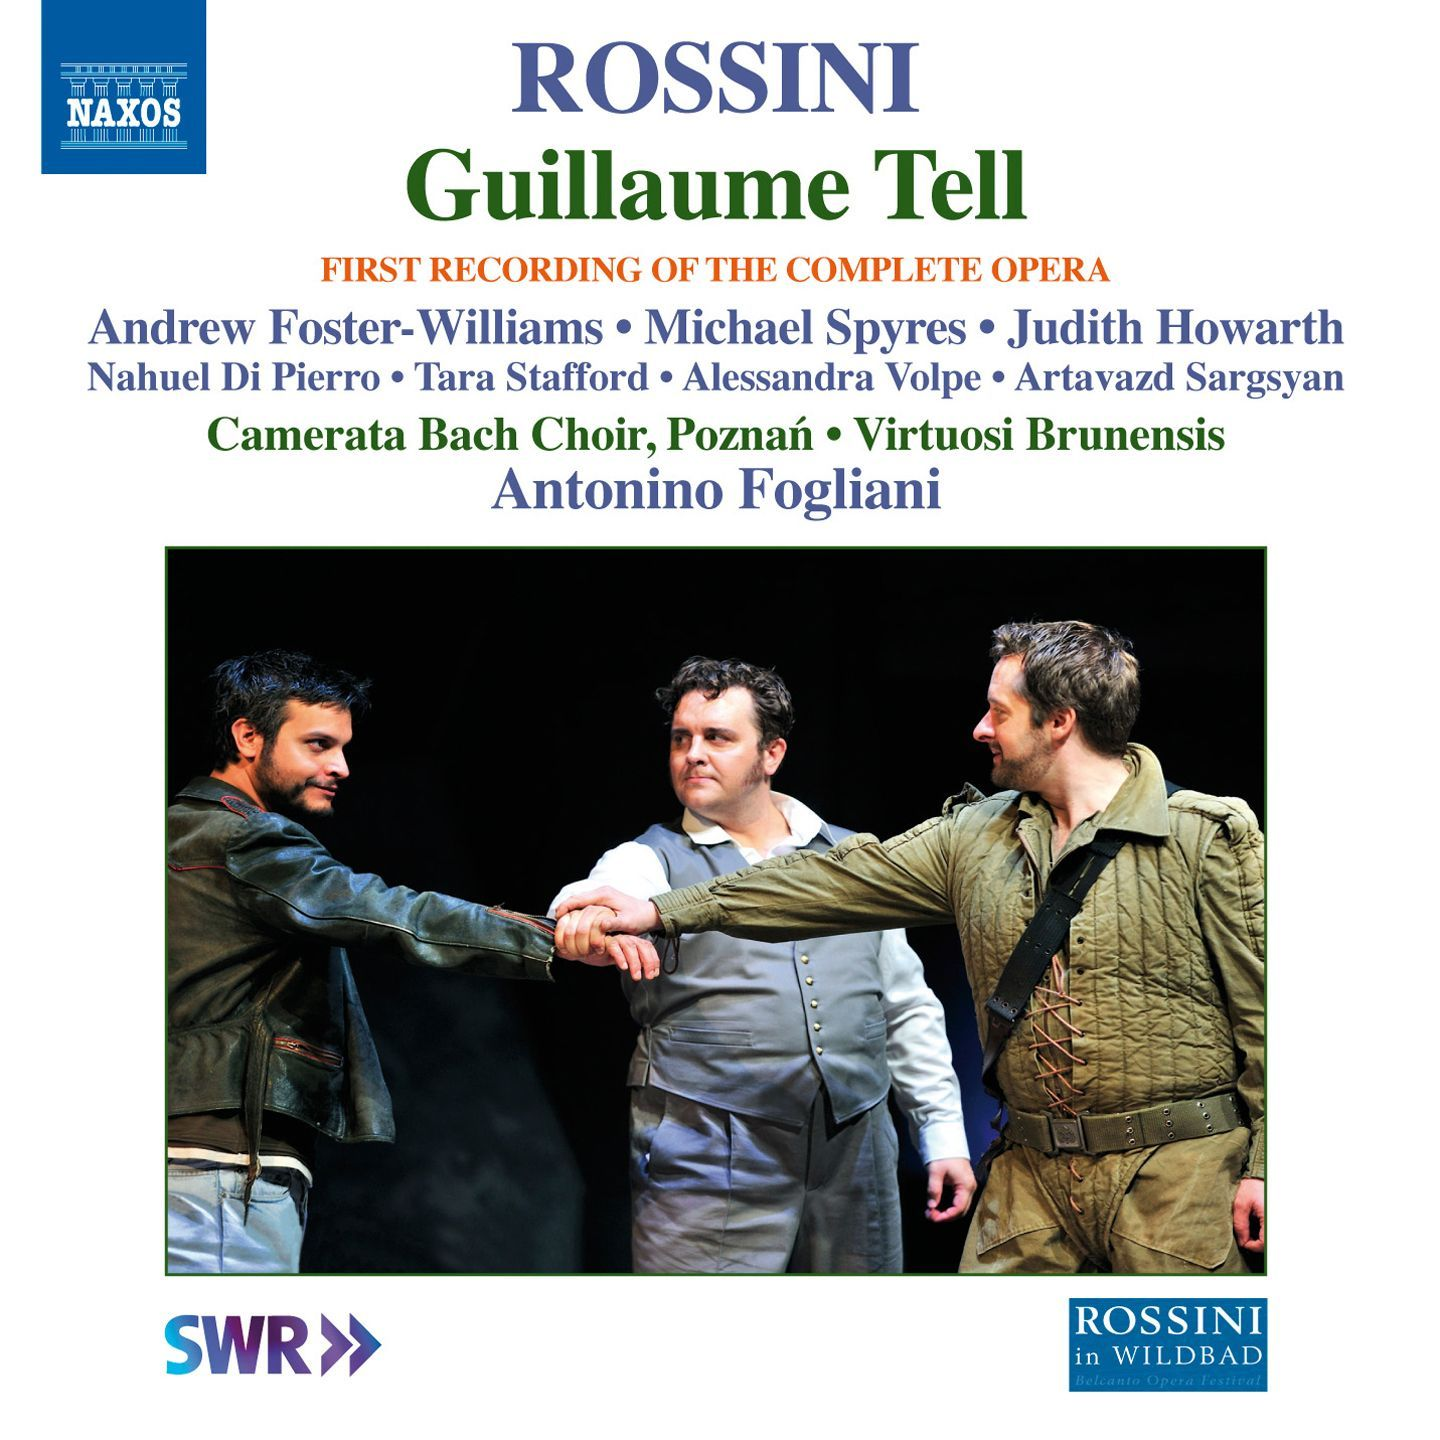 Rossini / Foster-Williams / Camerata Bach Choir - Guillaume Tell